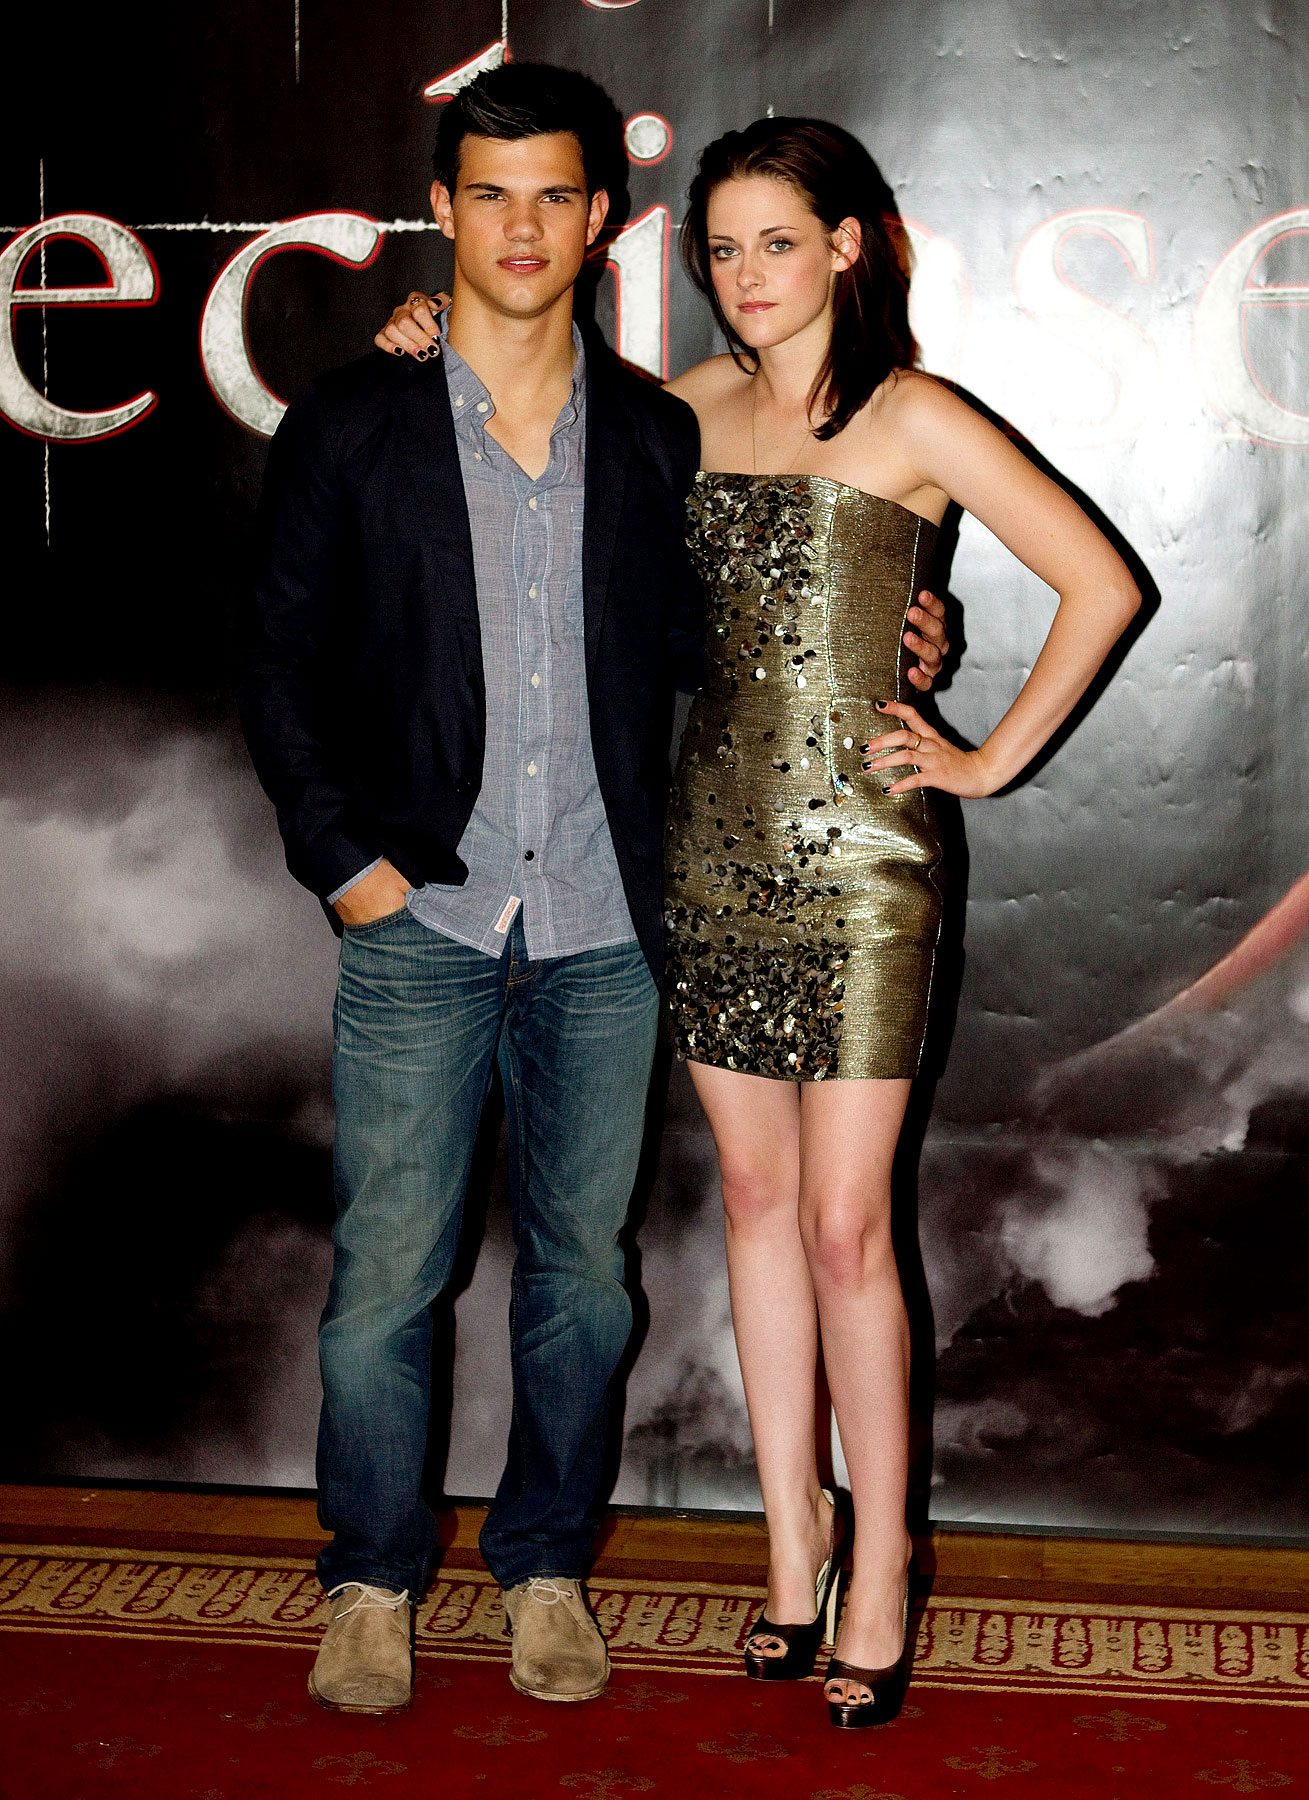 Kristen Stewart & Taylor Lautner FTW at the 'Eclipse' Photocall (PHOTOS)